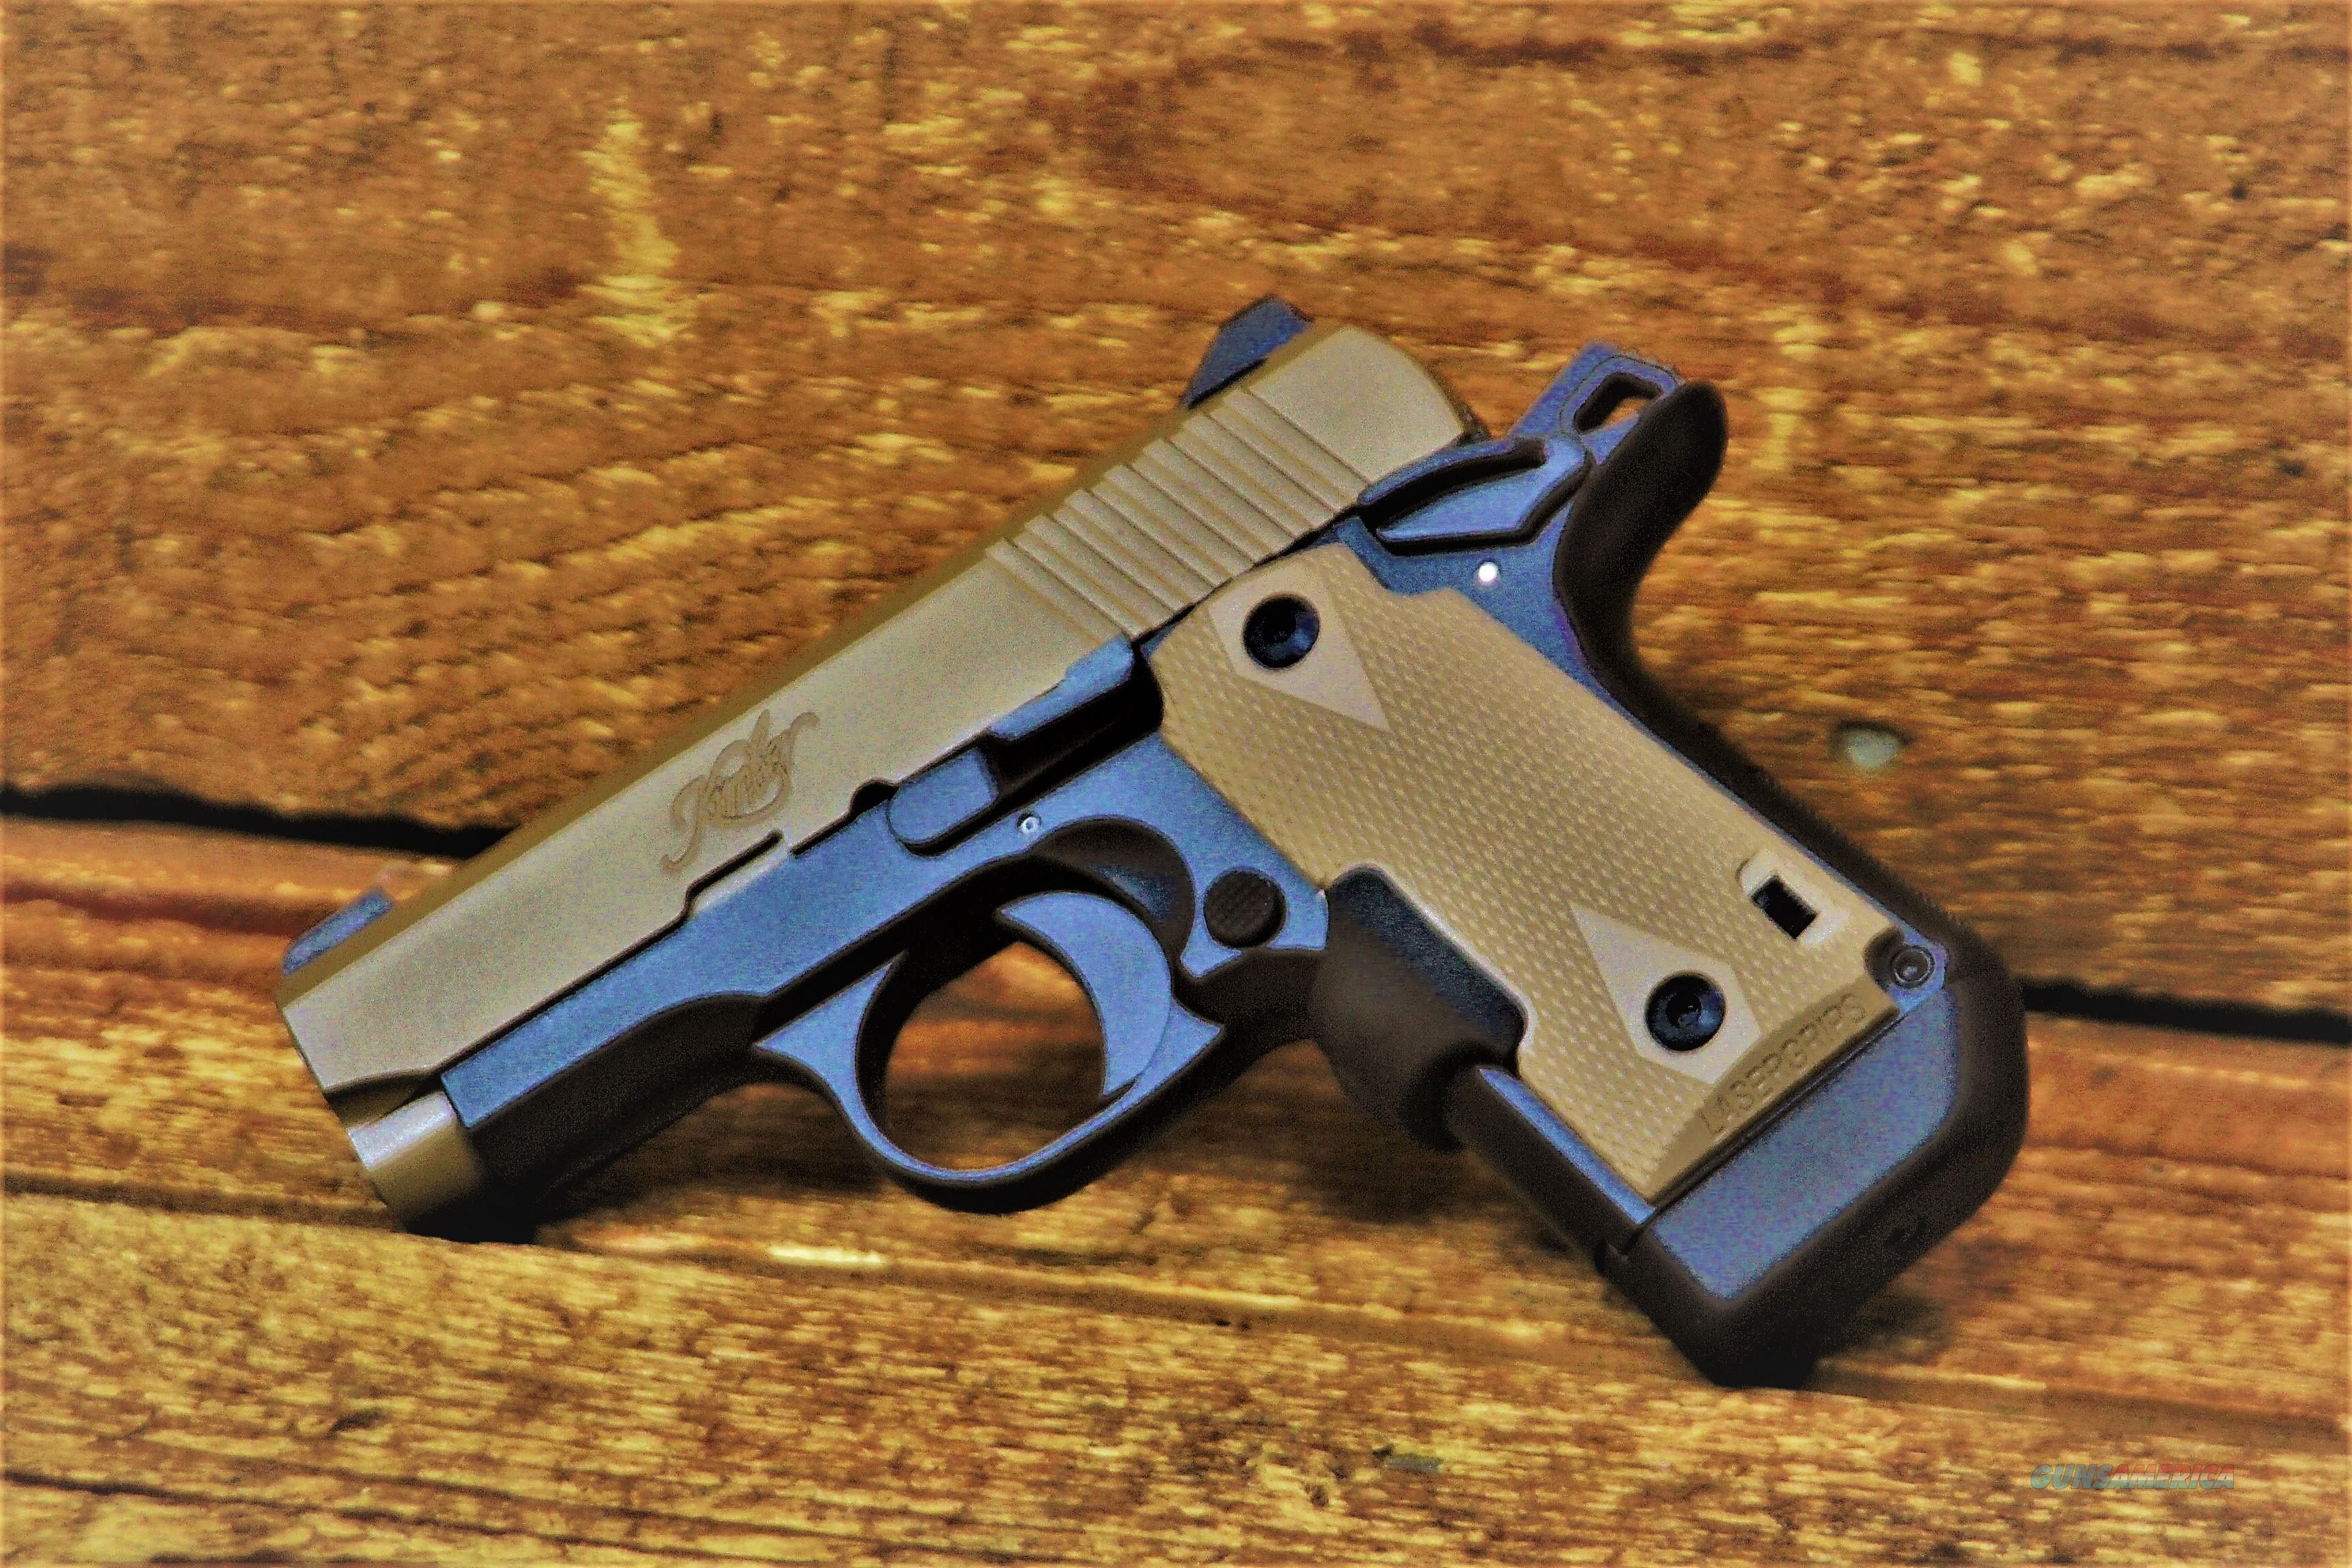 EASY PAY $62 DOWN LAYAWAY 12 MONTHLY PAYMENTS concealed carry Crimson Trace Laser  grips intuitive operation of a 1911 Pocket Pistol KIMBER MICRO  operation of a 1911 380 ACP Finish DESERT TAN  KimPro II  3300177  Guns > Pistols > Kimber of America Pistols > Micro